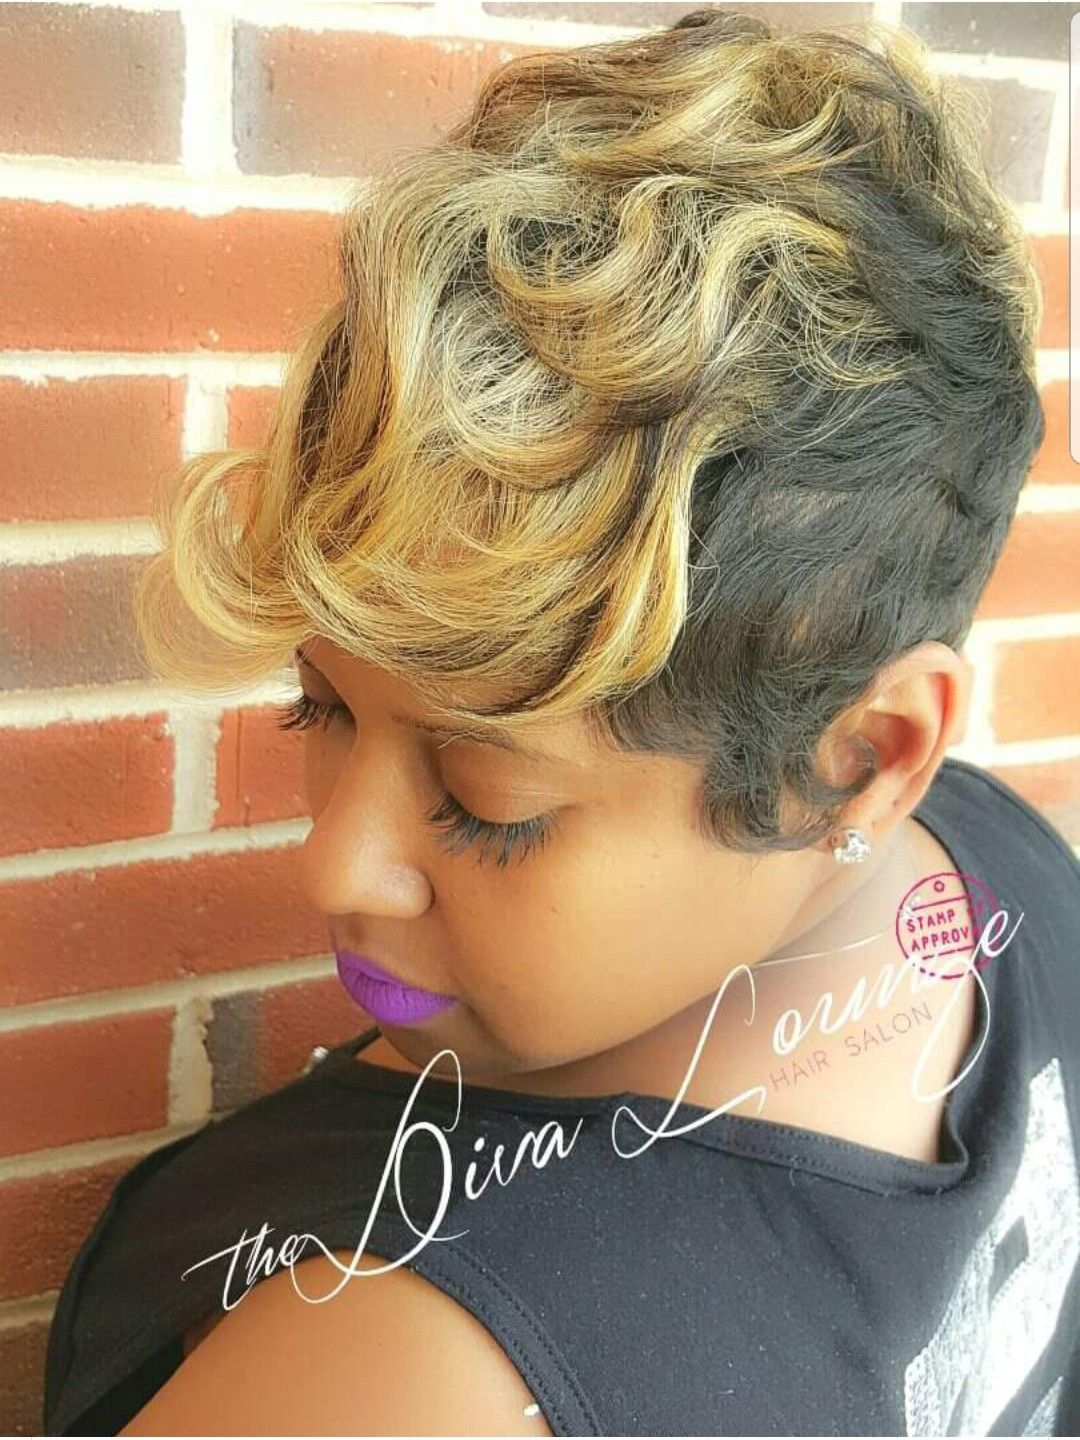 The Diva Hair Salon Larnetta Moncrief Montgomery Alabama Short Sassy Hair Sassy Hair Short Hair Styles